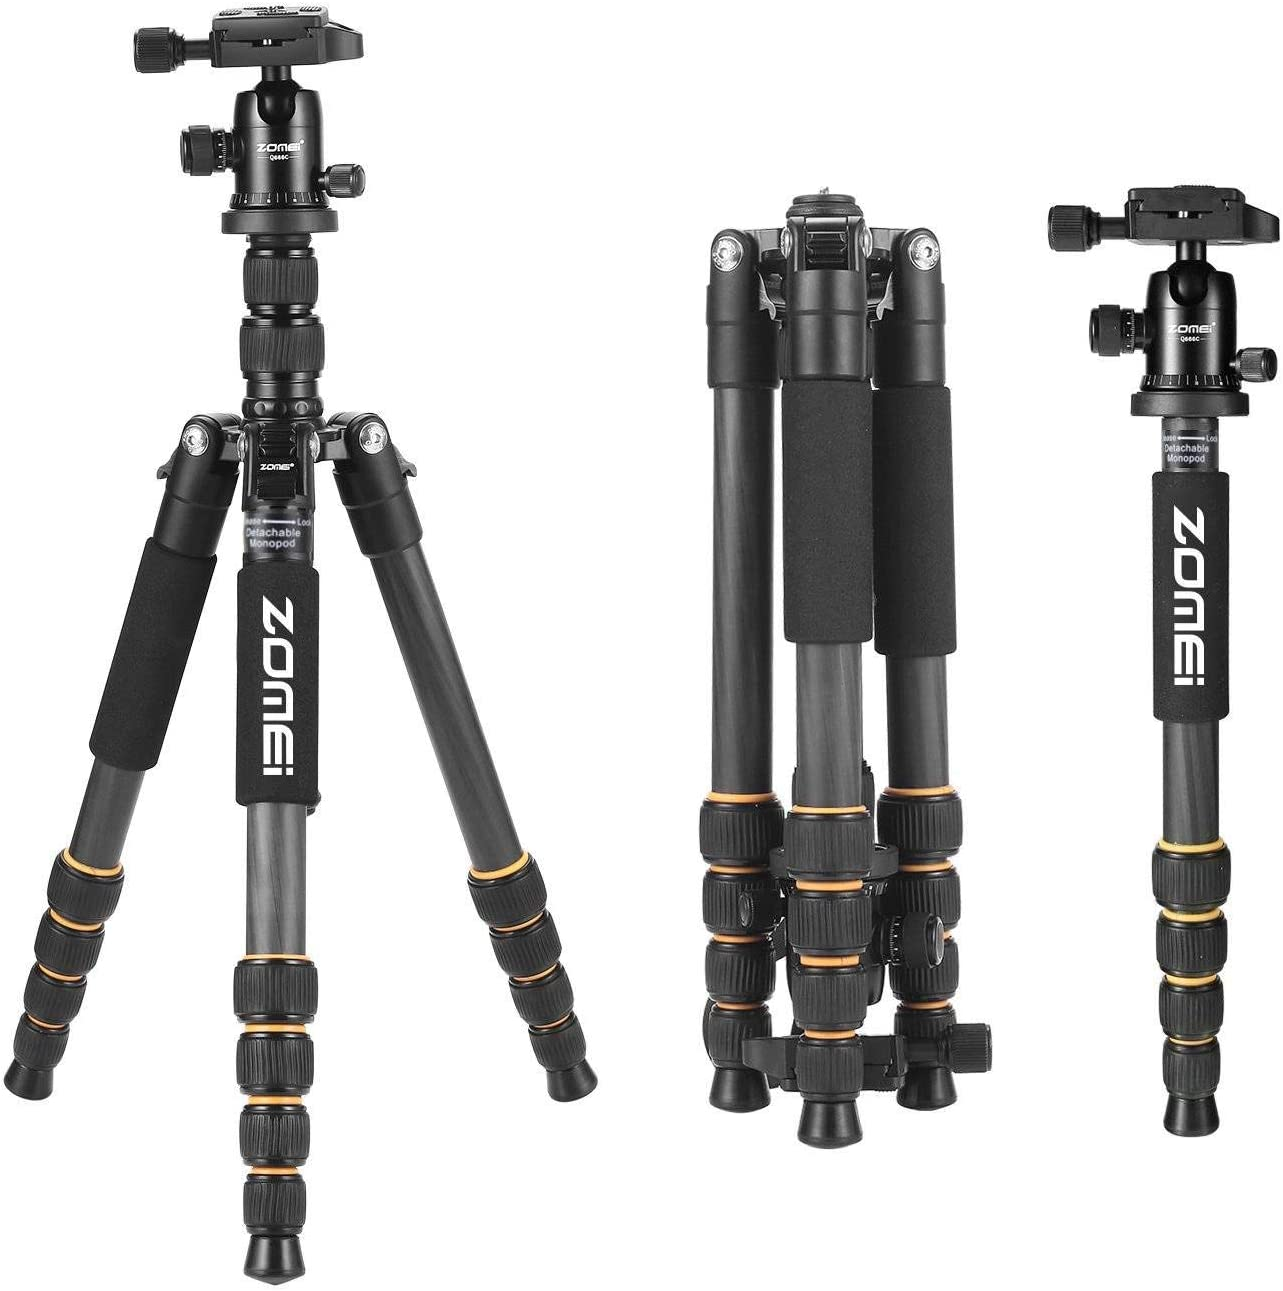 Lbzbz Carbon Fiber Q666C Tripod Heavy Duty Lightweight Travel with 360 Degree Ball Head Compact